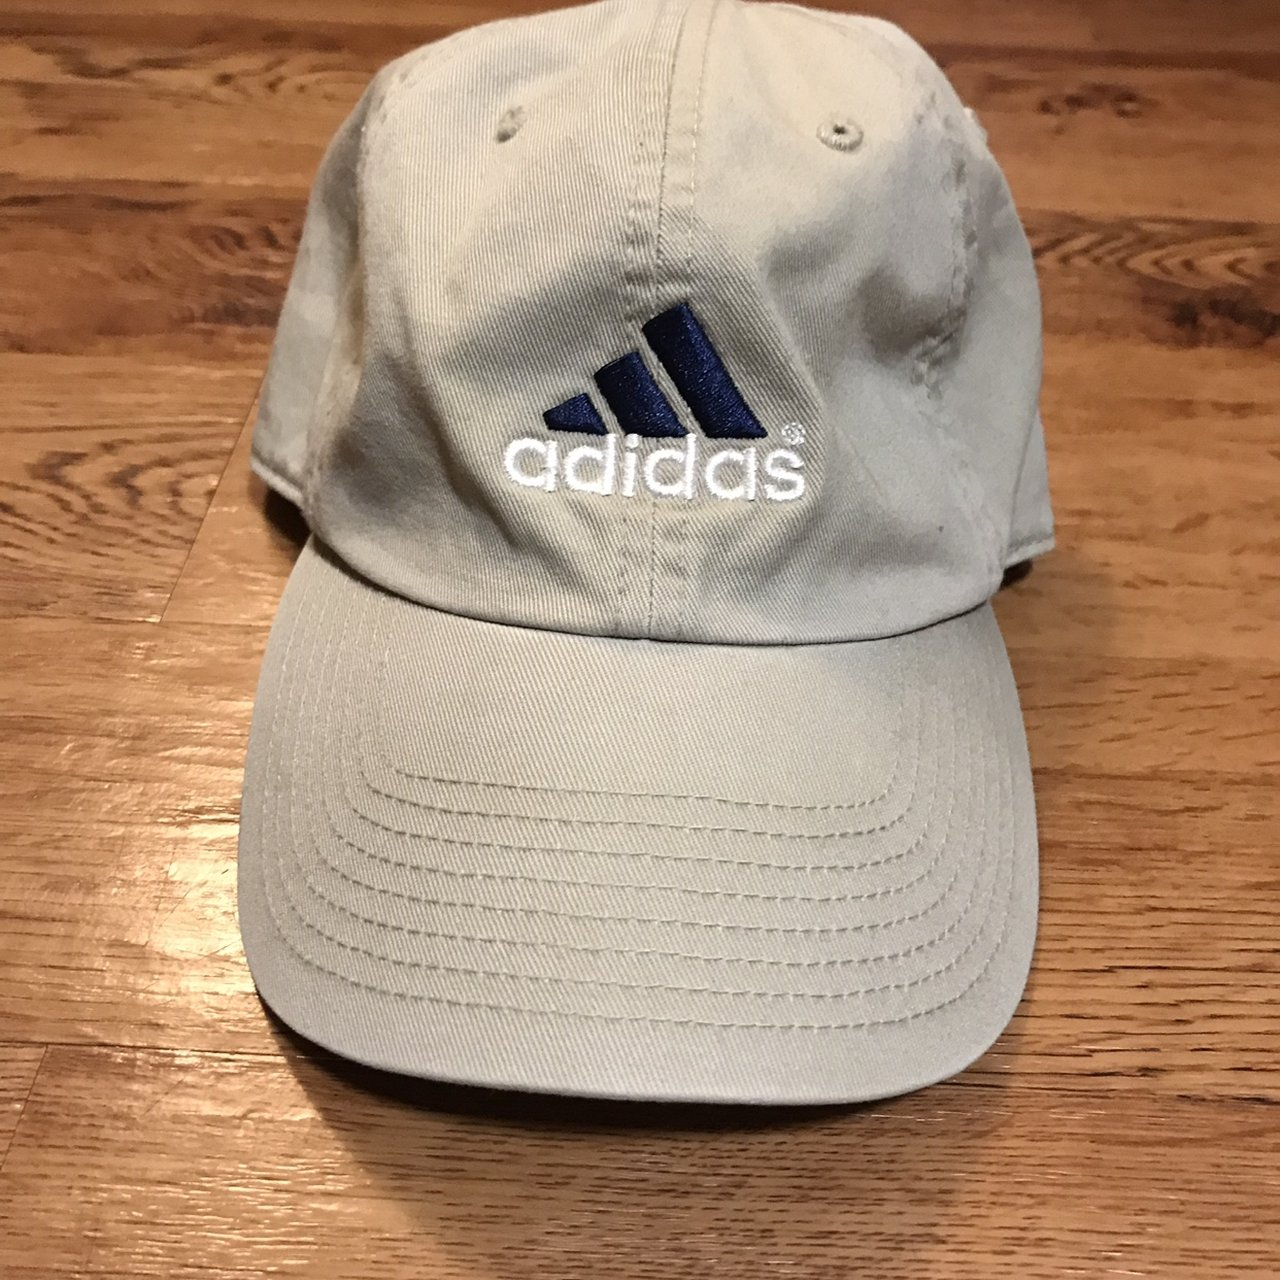 Vintage Adidas khaki colored Dad hat. One size fits all. no - Depop 74024451c6e